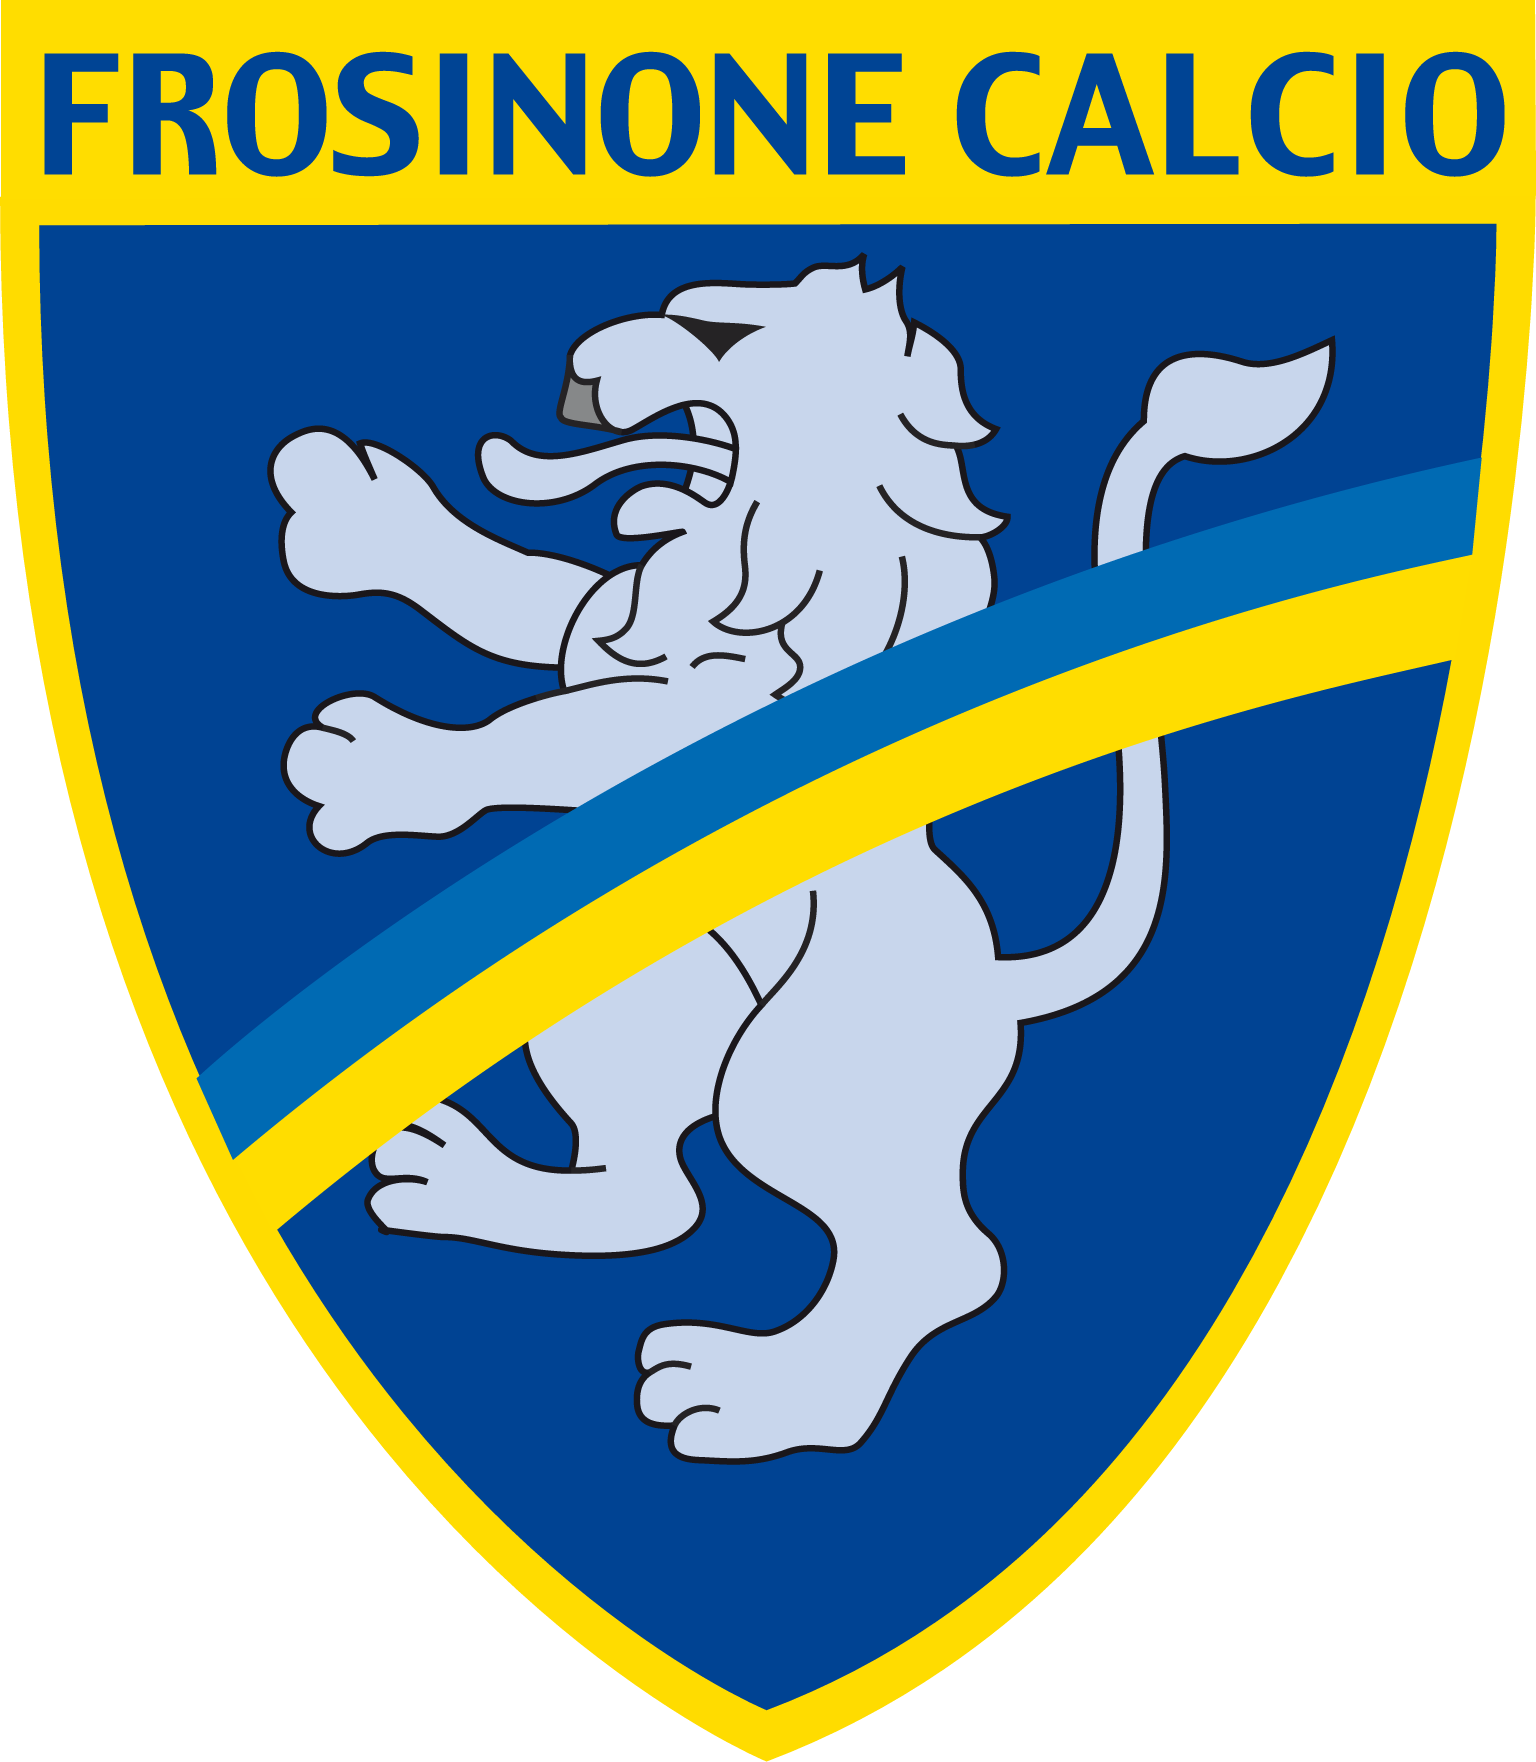 https://upload.wikimedia.org/wikipedia/ru/6/64/Frosinone_Calcio_logo.png